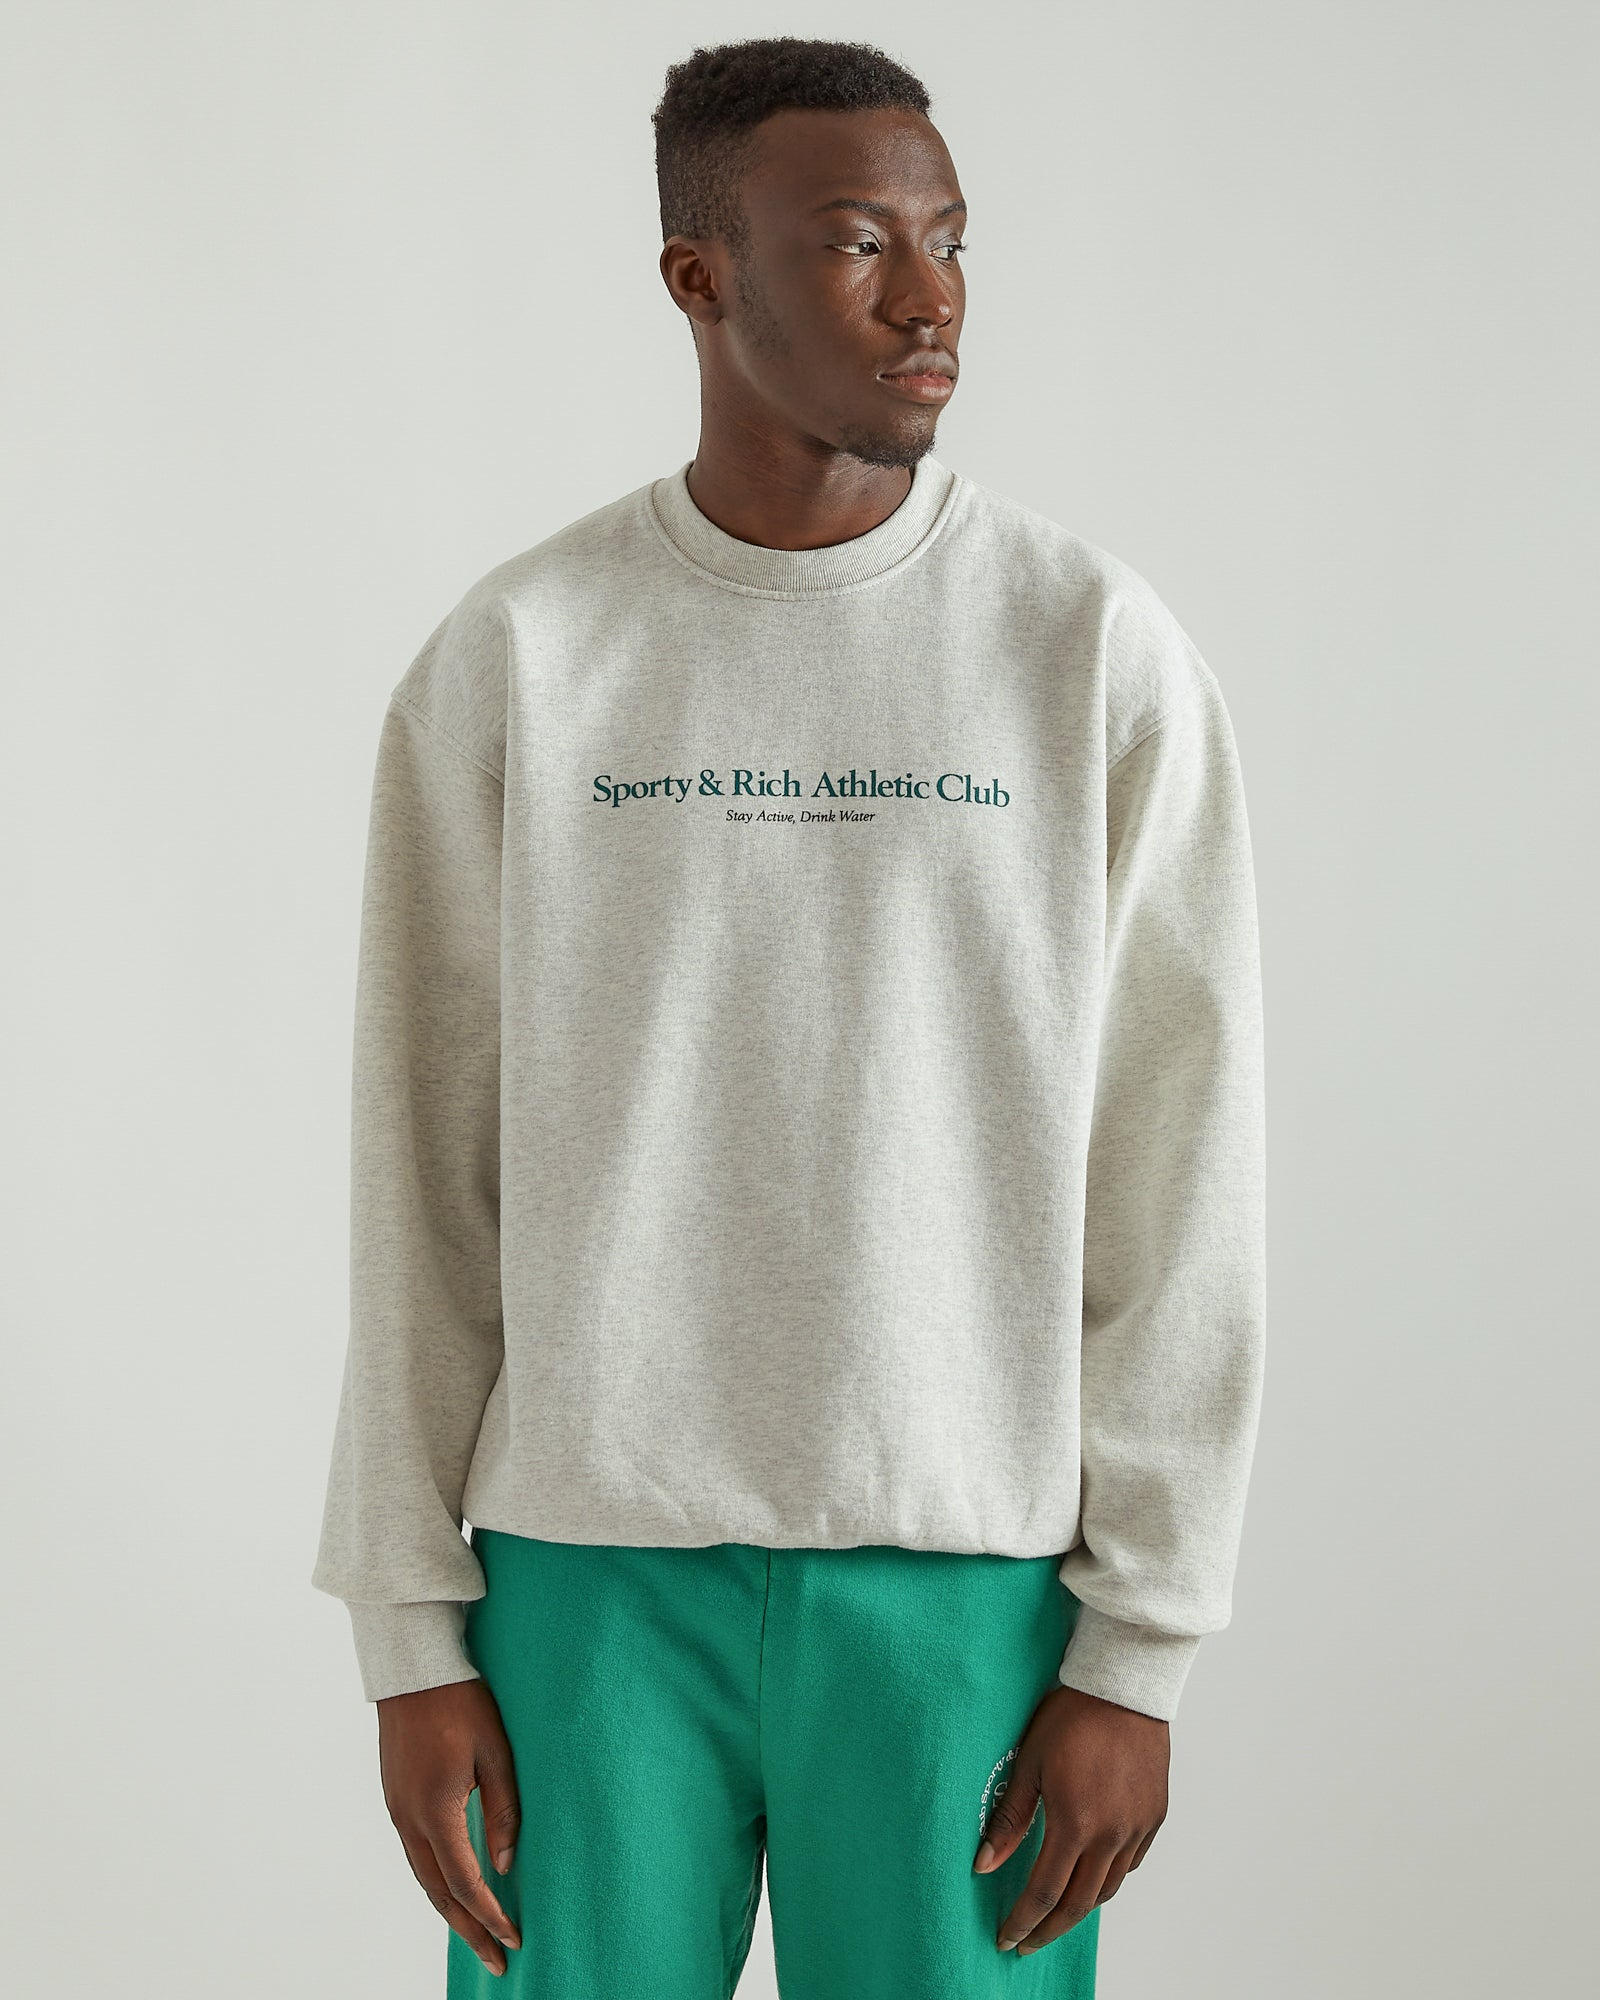 Athletic Club Crewneck in Heather Gray